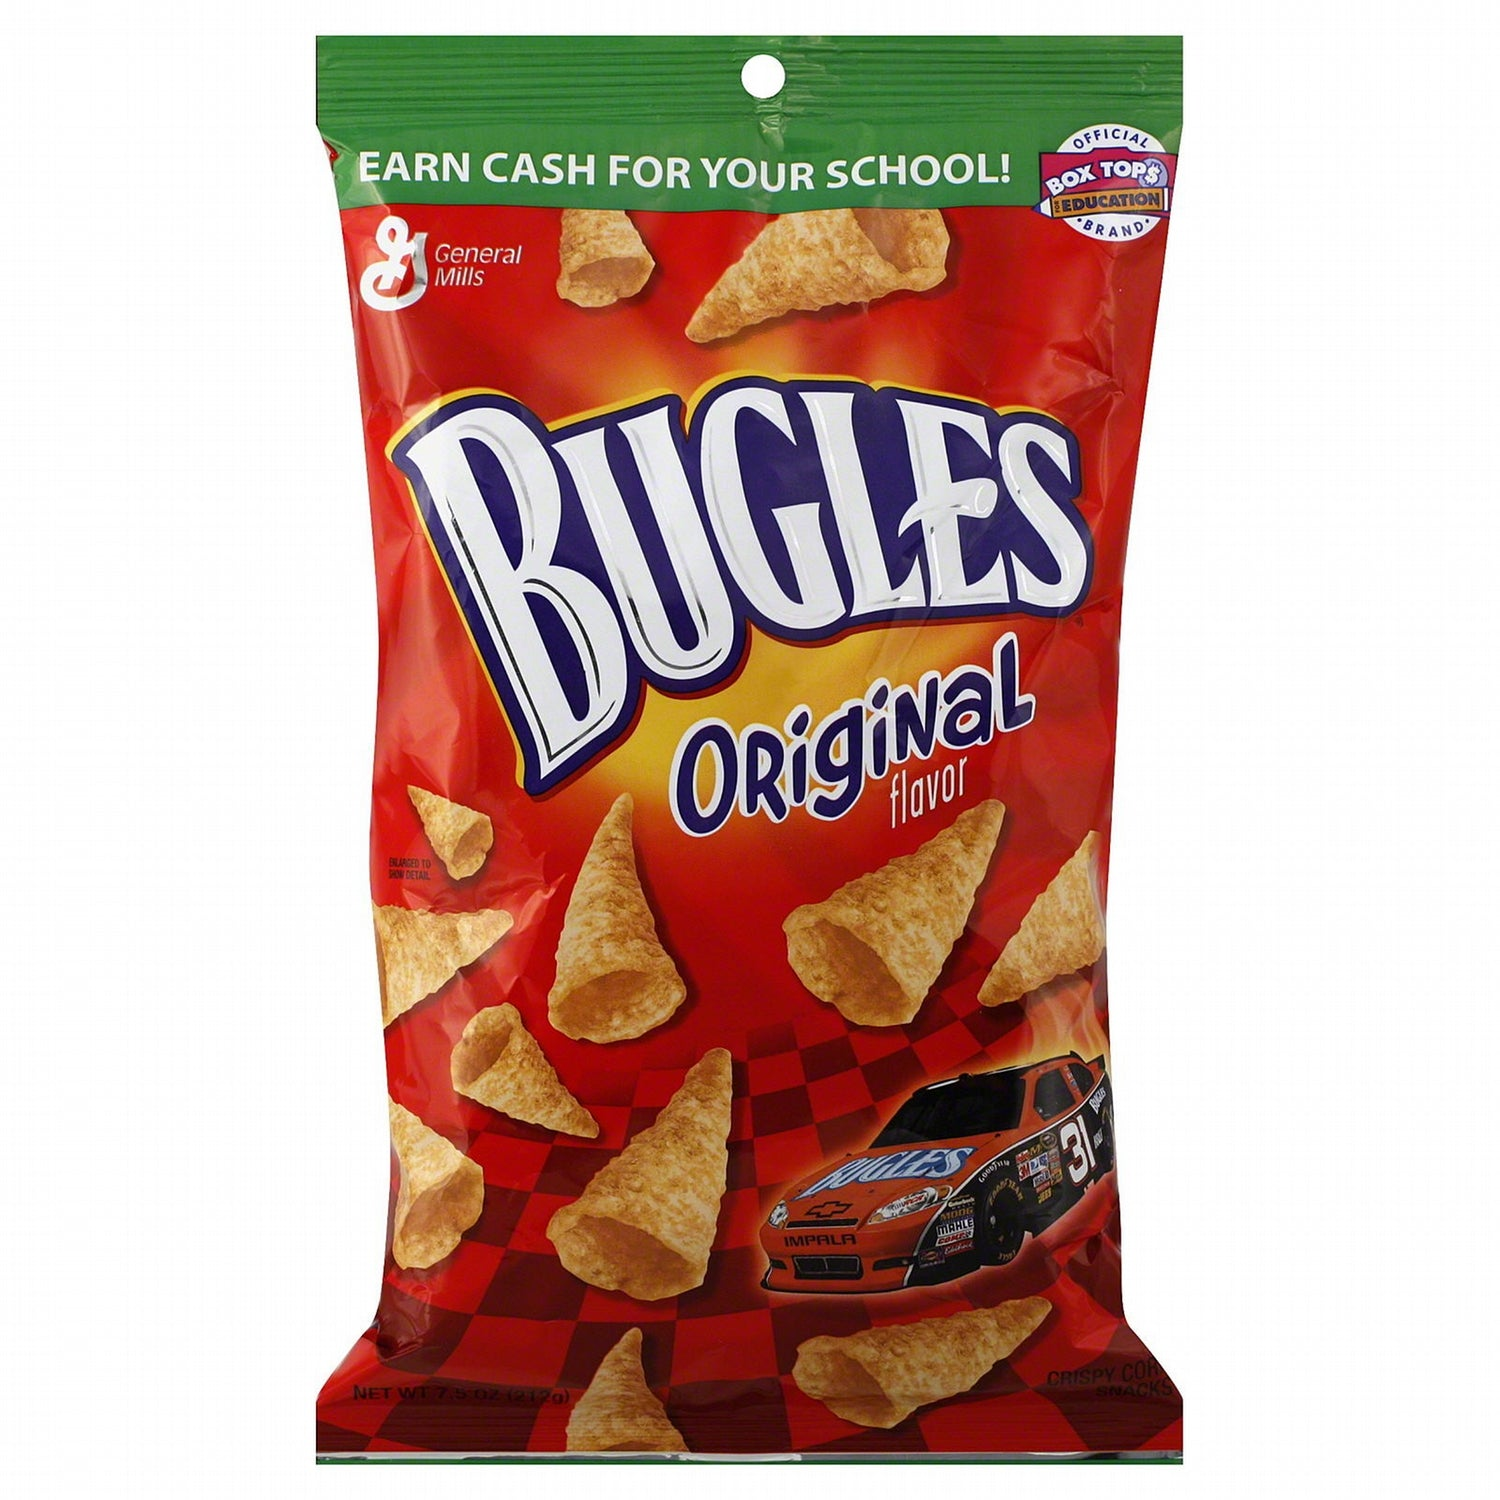 General Mills Bugles Original (7.5oz) 213g - A Taste of the States